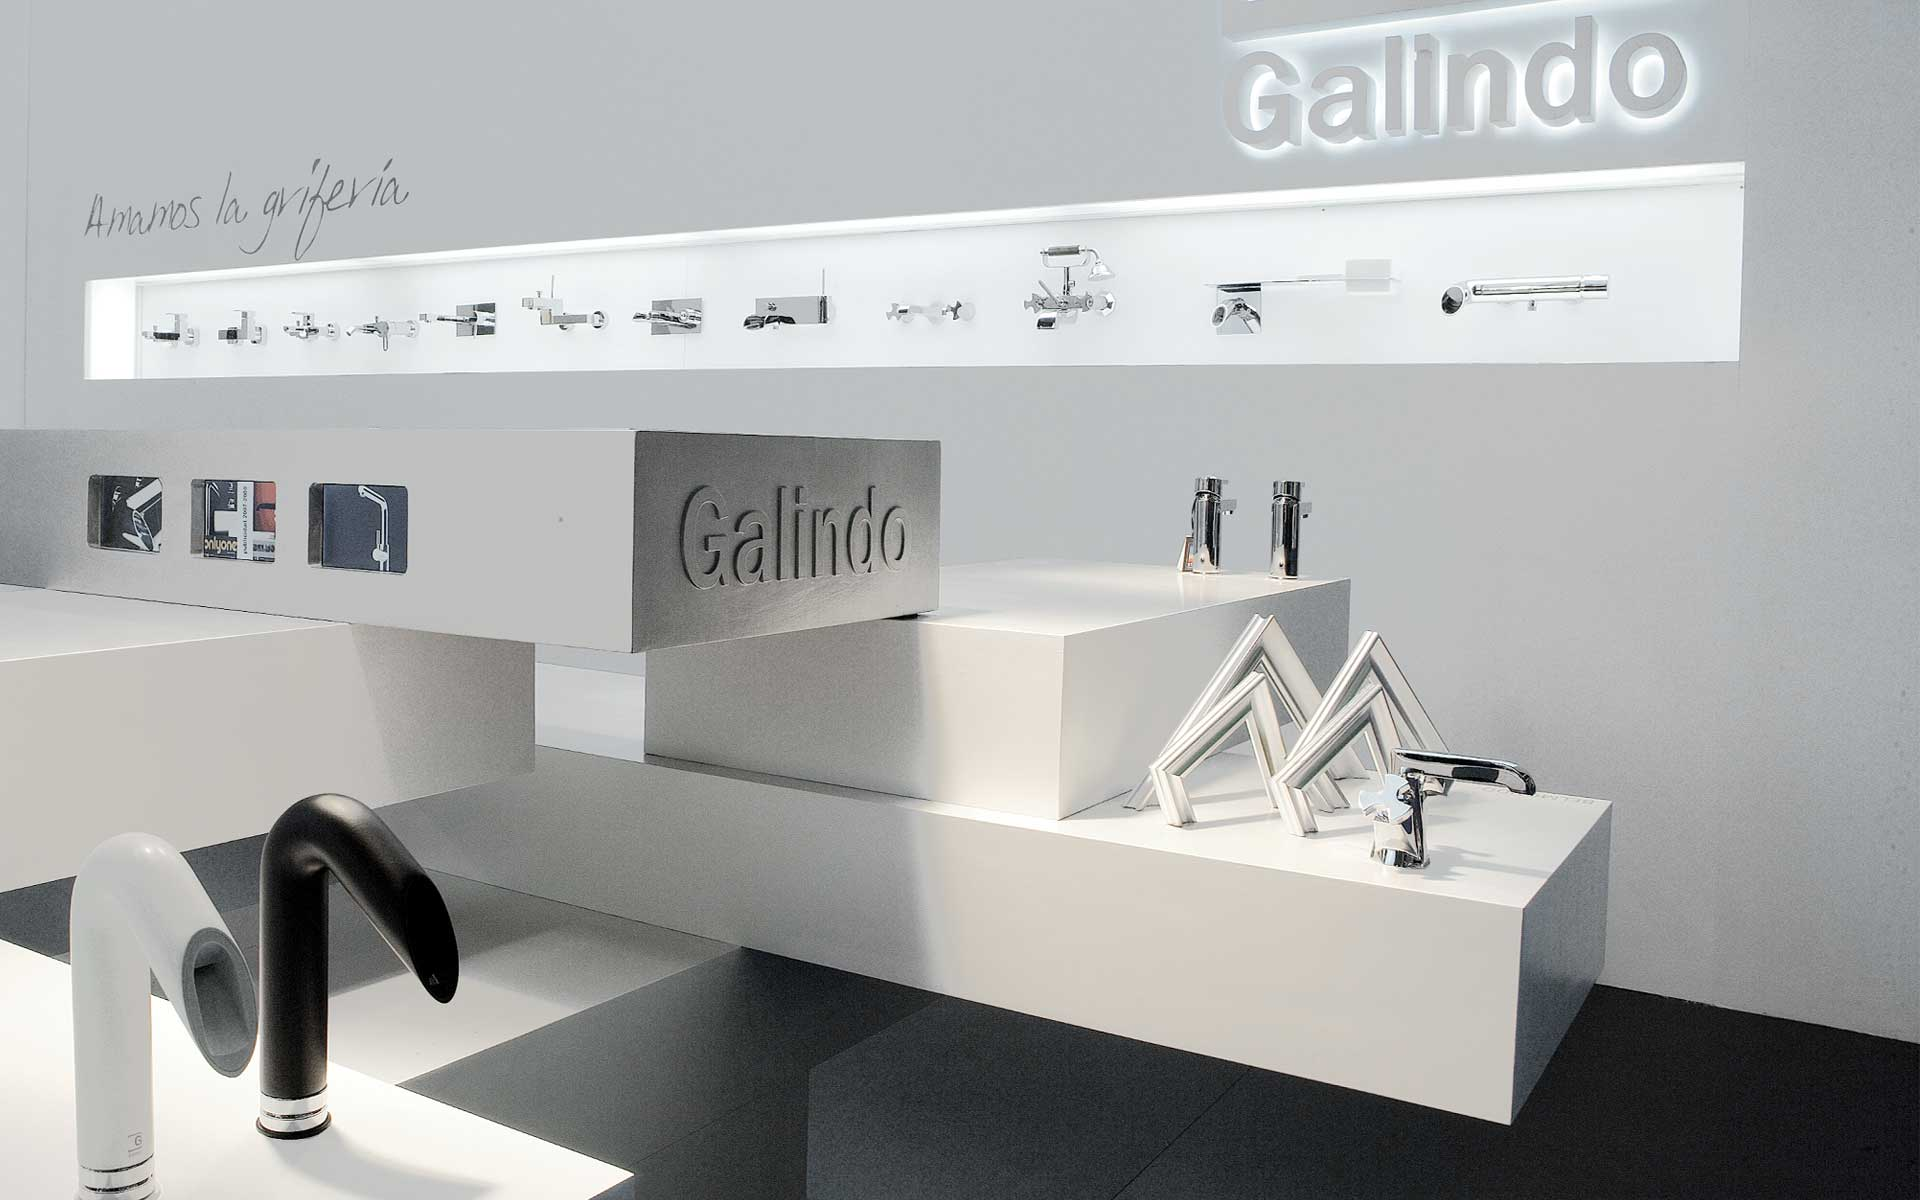 Construmat trade fair (EXPO) faucet stand design builded in Barcelona